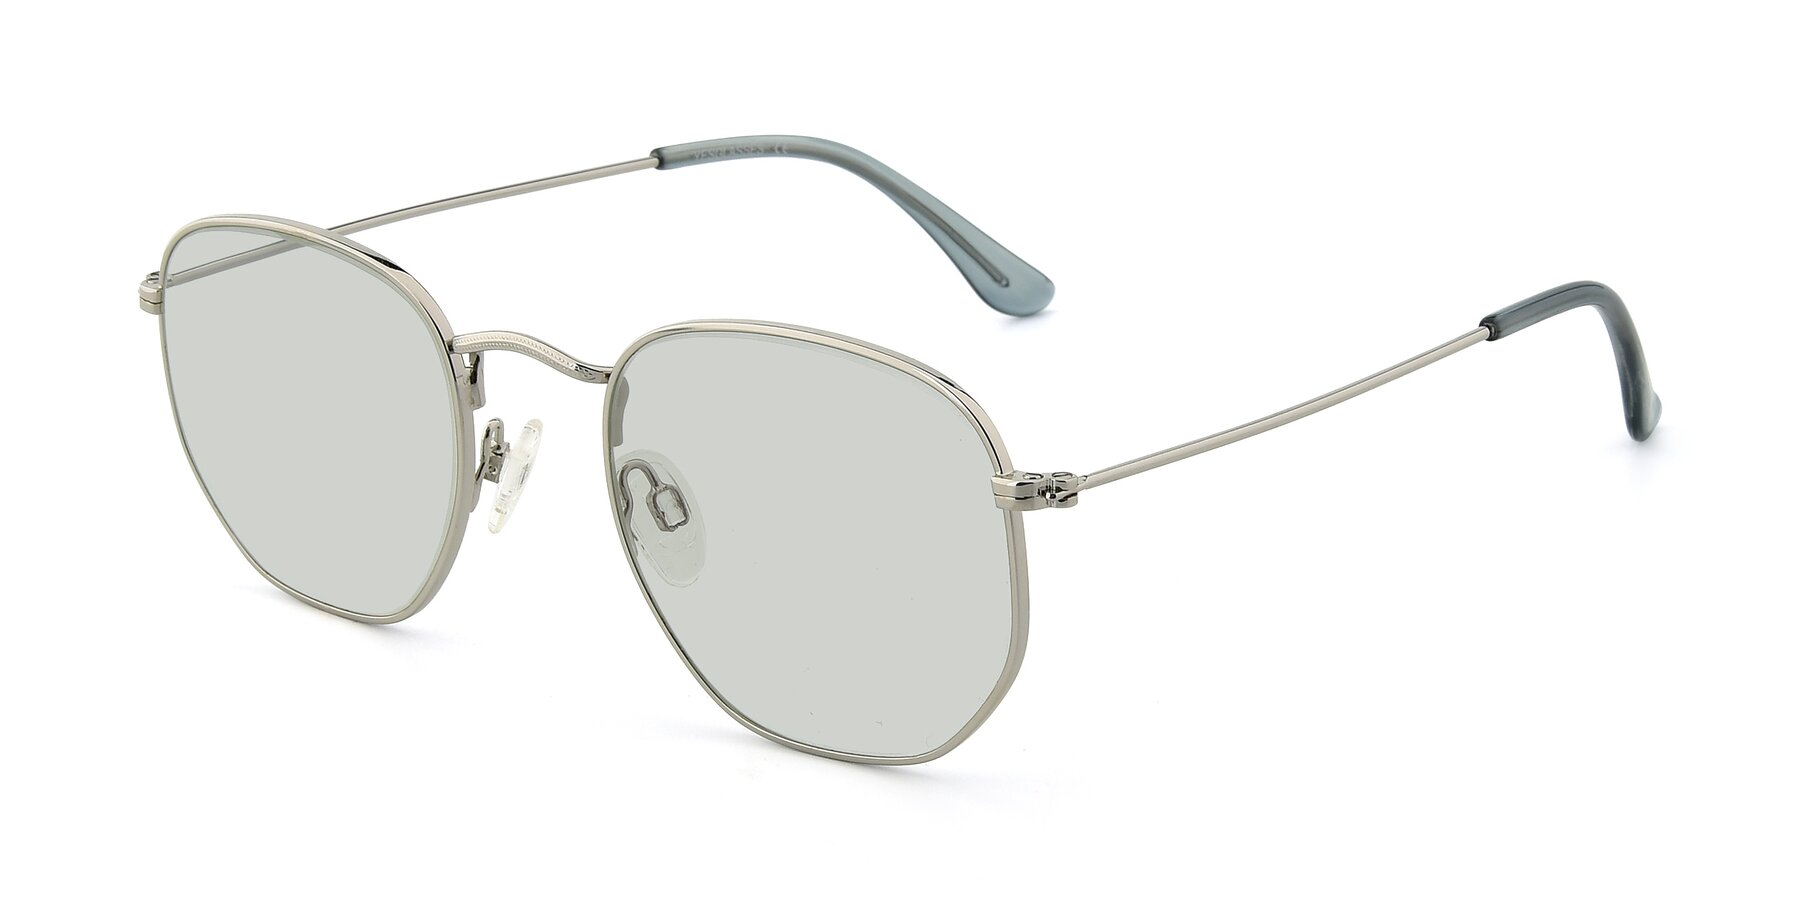 Angle of SSR1944 in Silver with Light Green Tinted Lenses